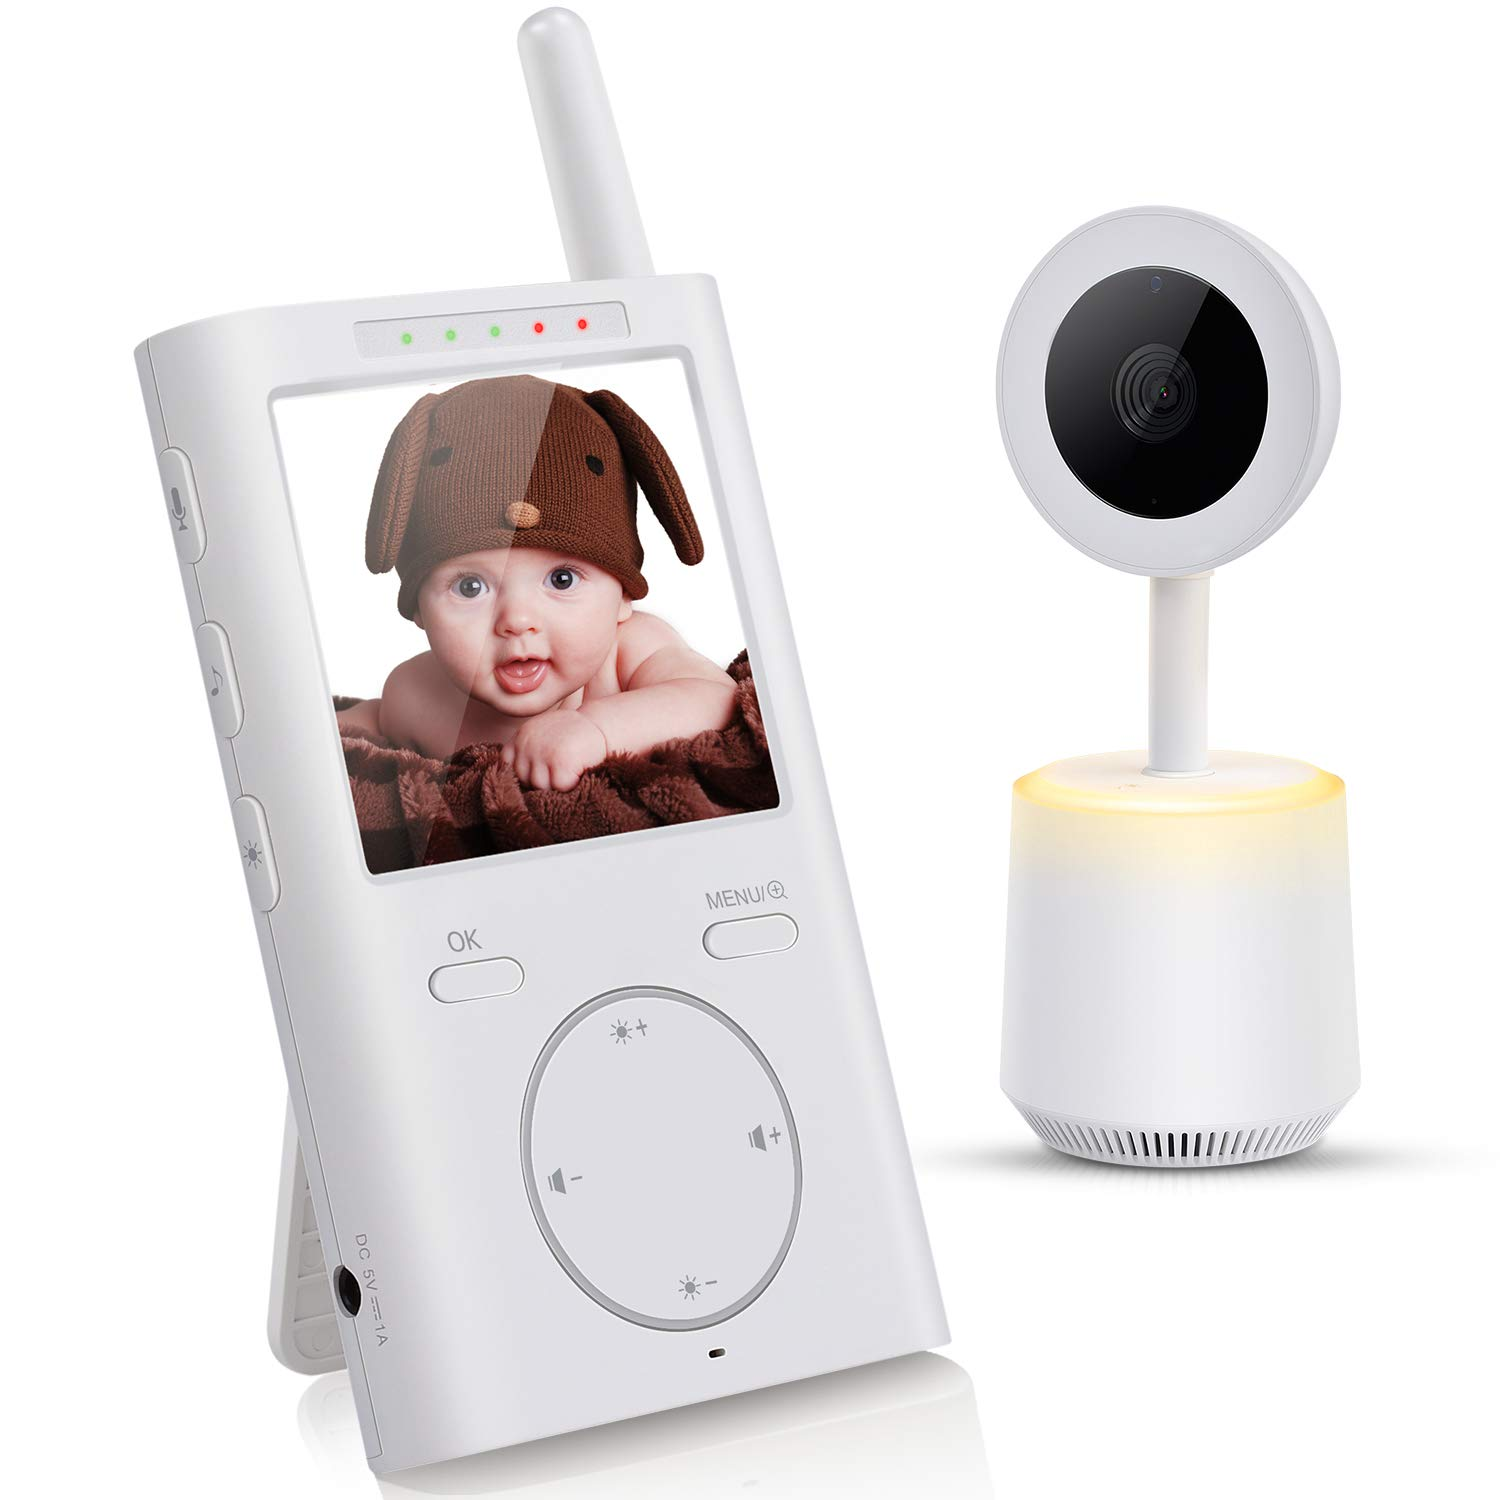 Baby Monitor, Letsfit 2.4GHz Wireless Video Baby Monitor with Camera and Audio, Night Light, White Noise, 8 Music Lullabies, VOX, Infrared Night Vision Baby Camera, 2 Way Talk Back with Carry Clip